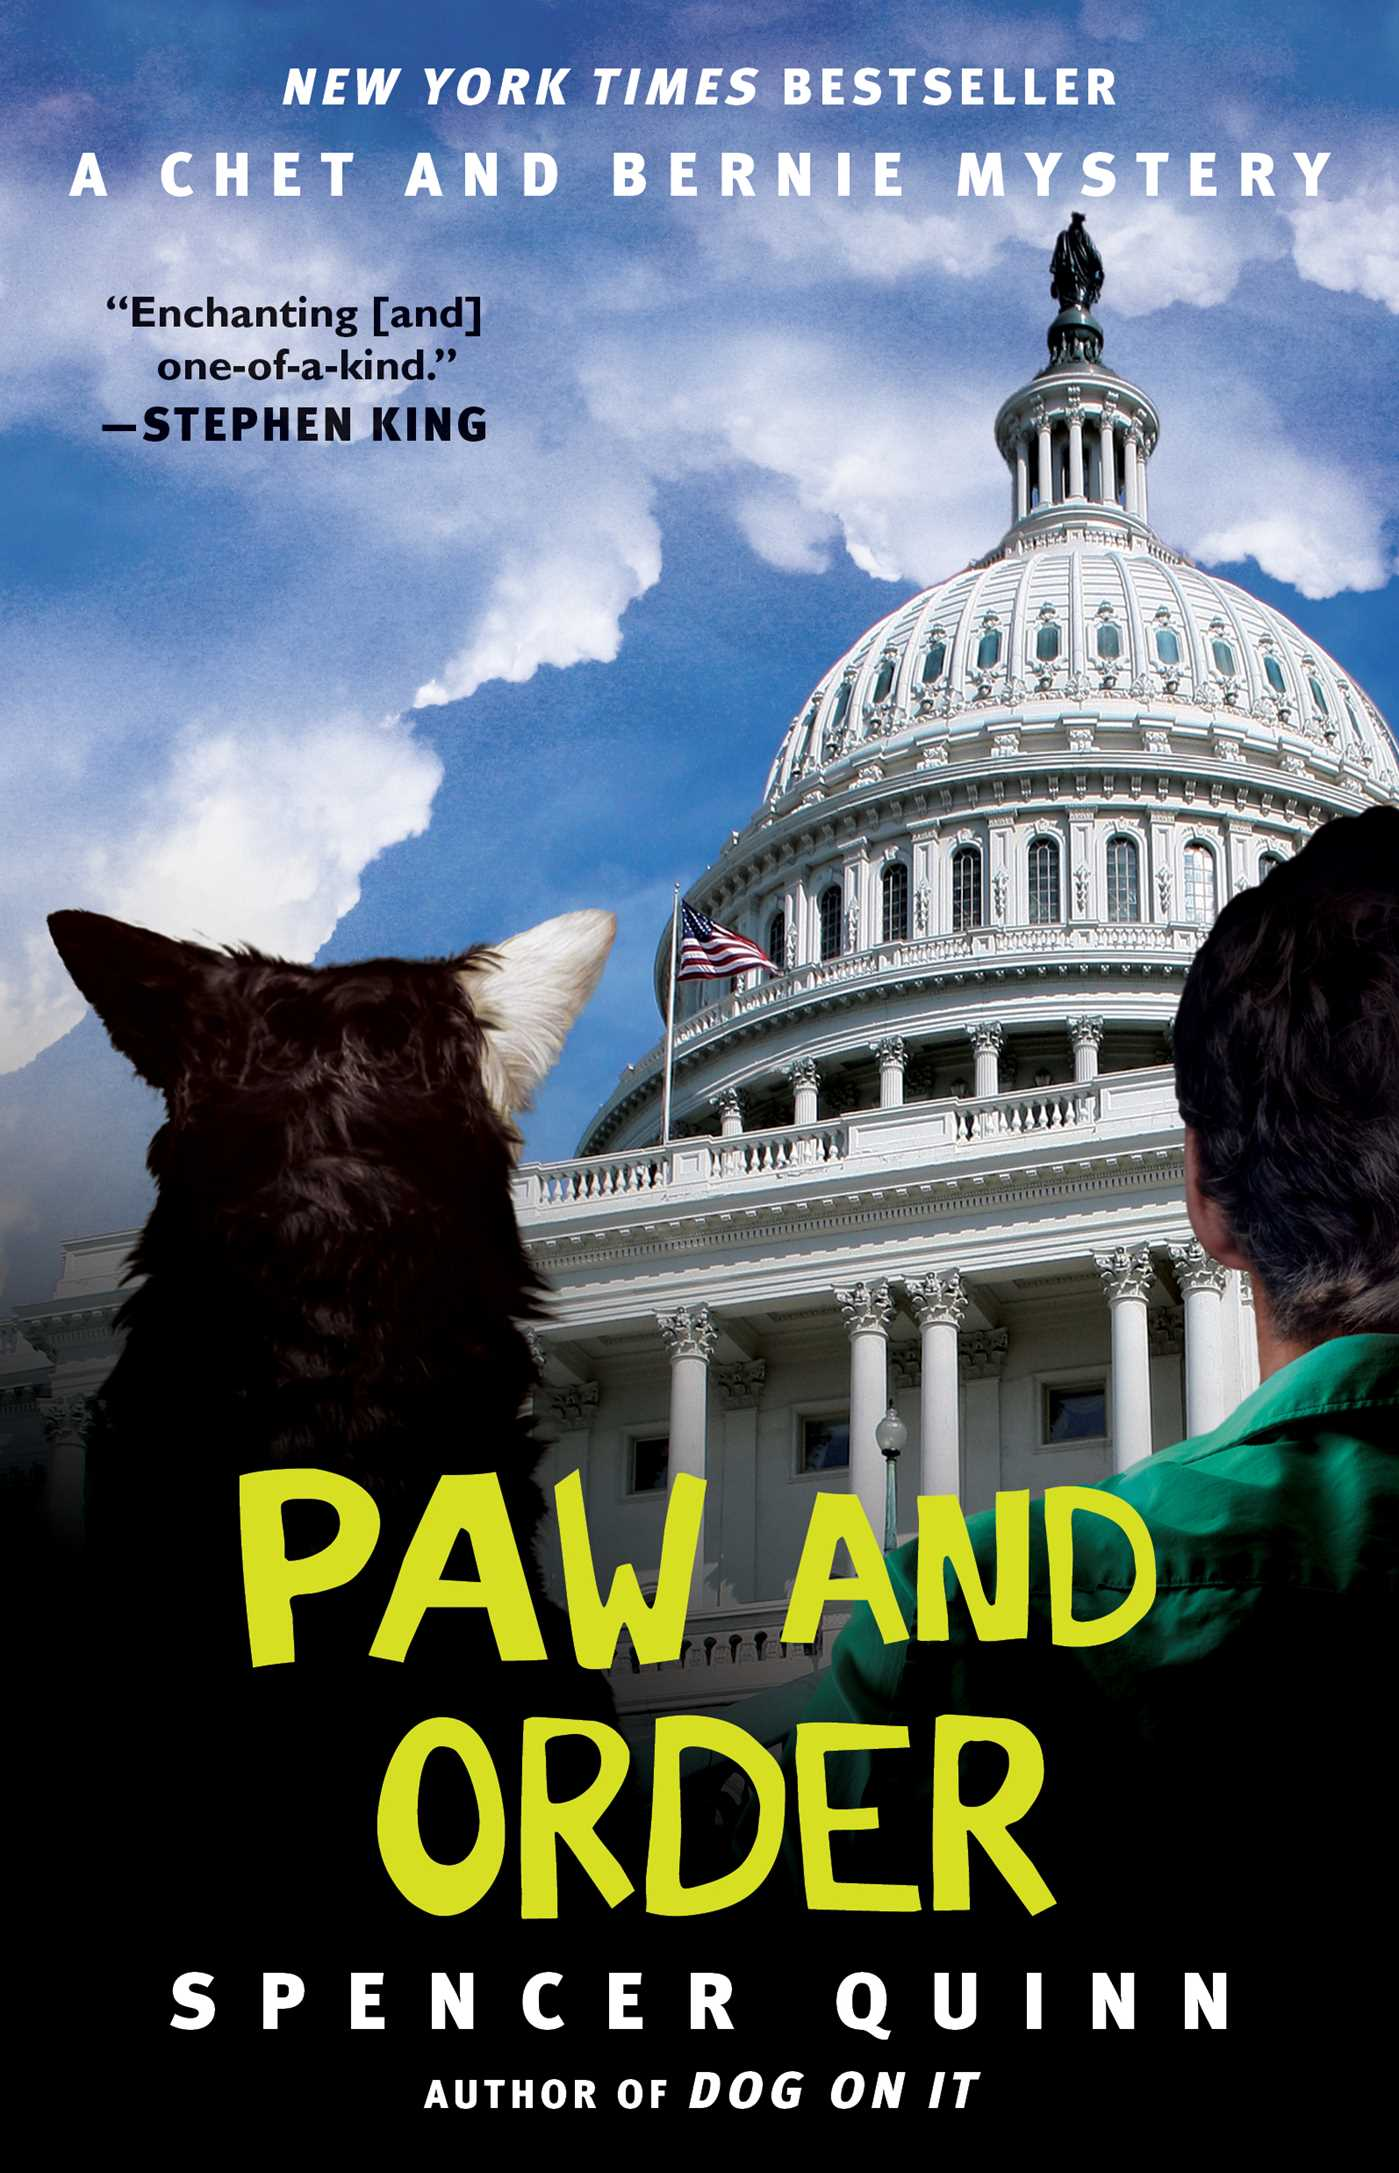 Paw-and-order-9781476703411_hr